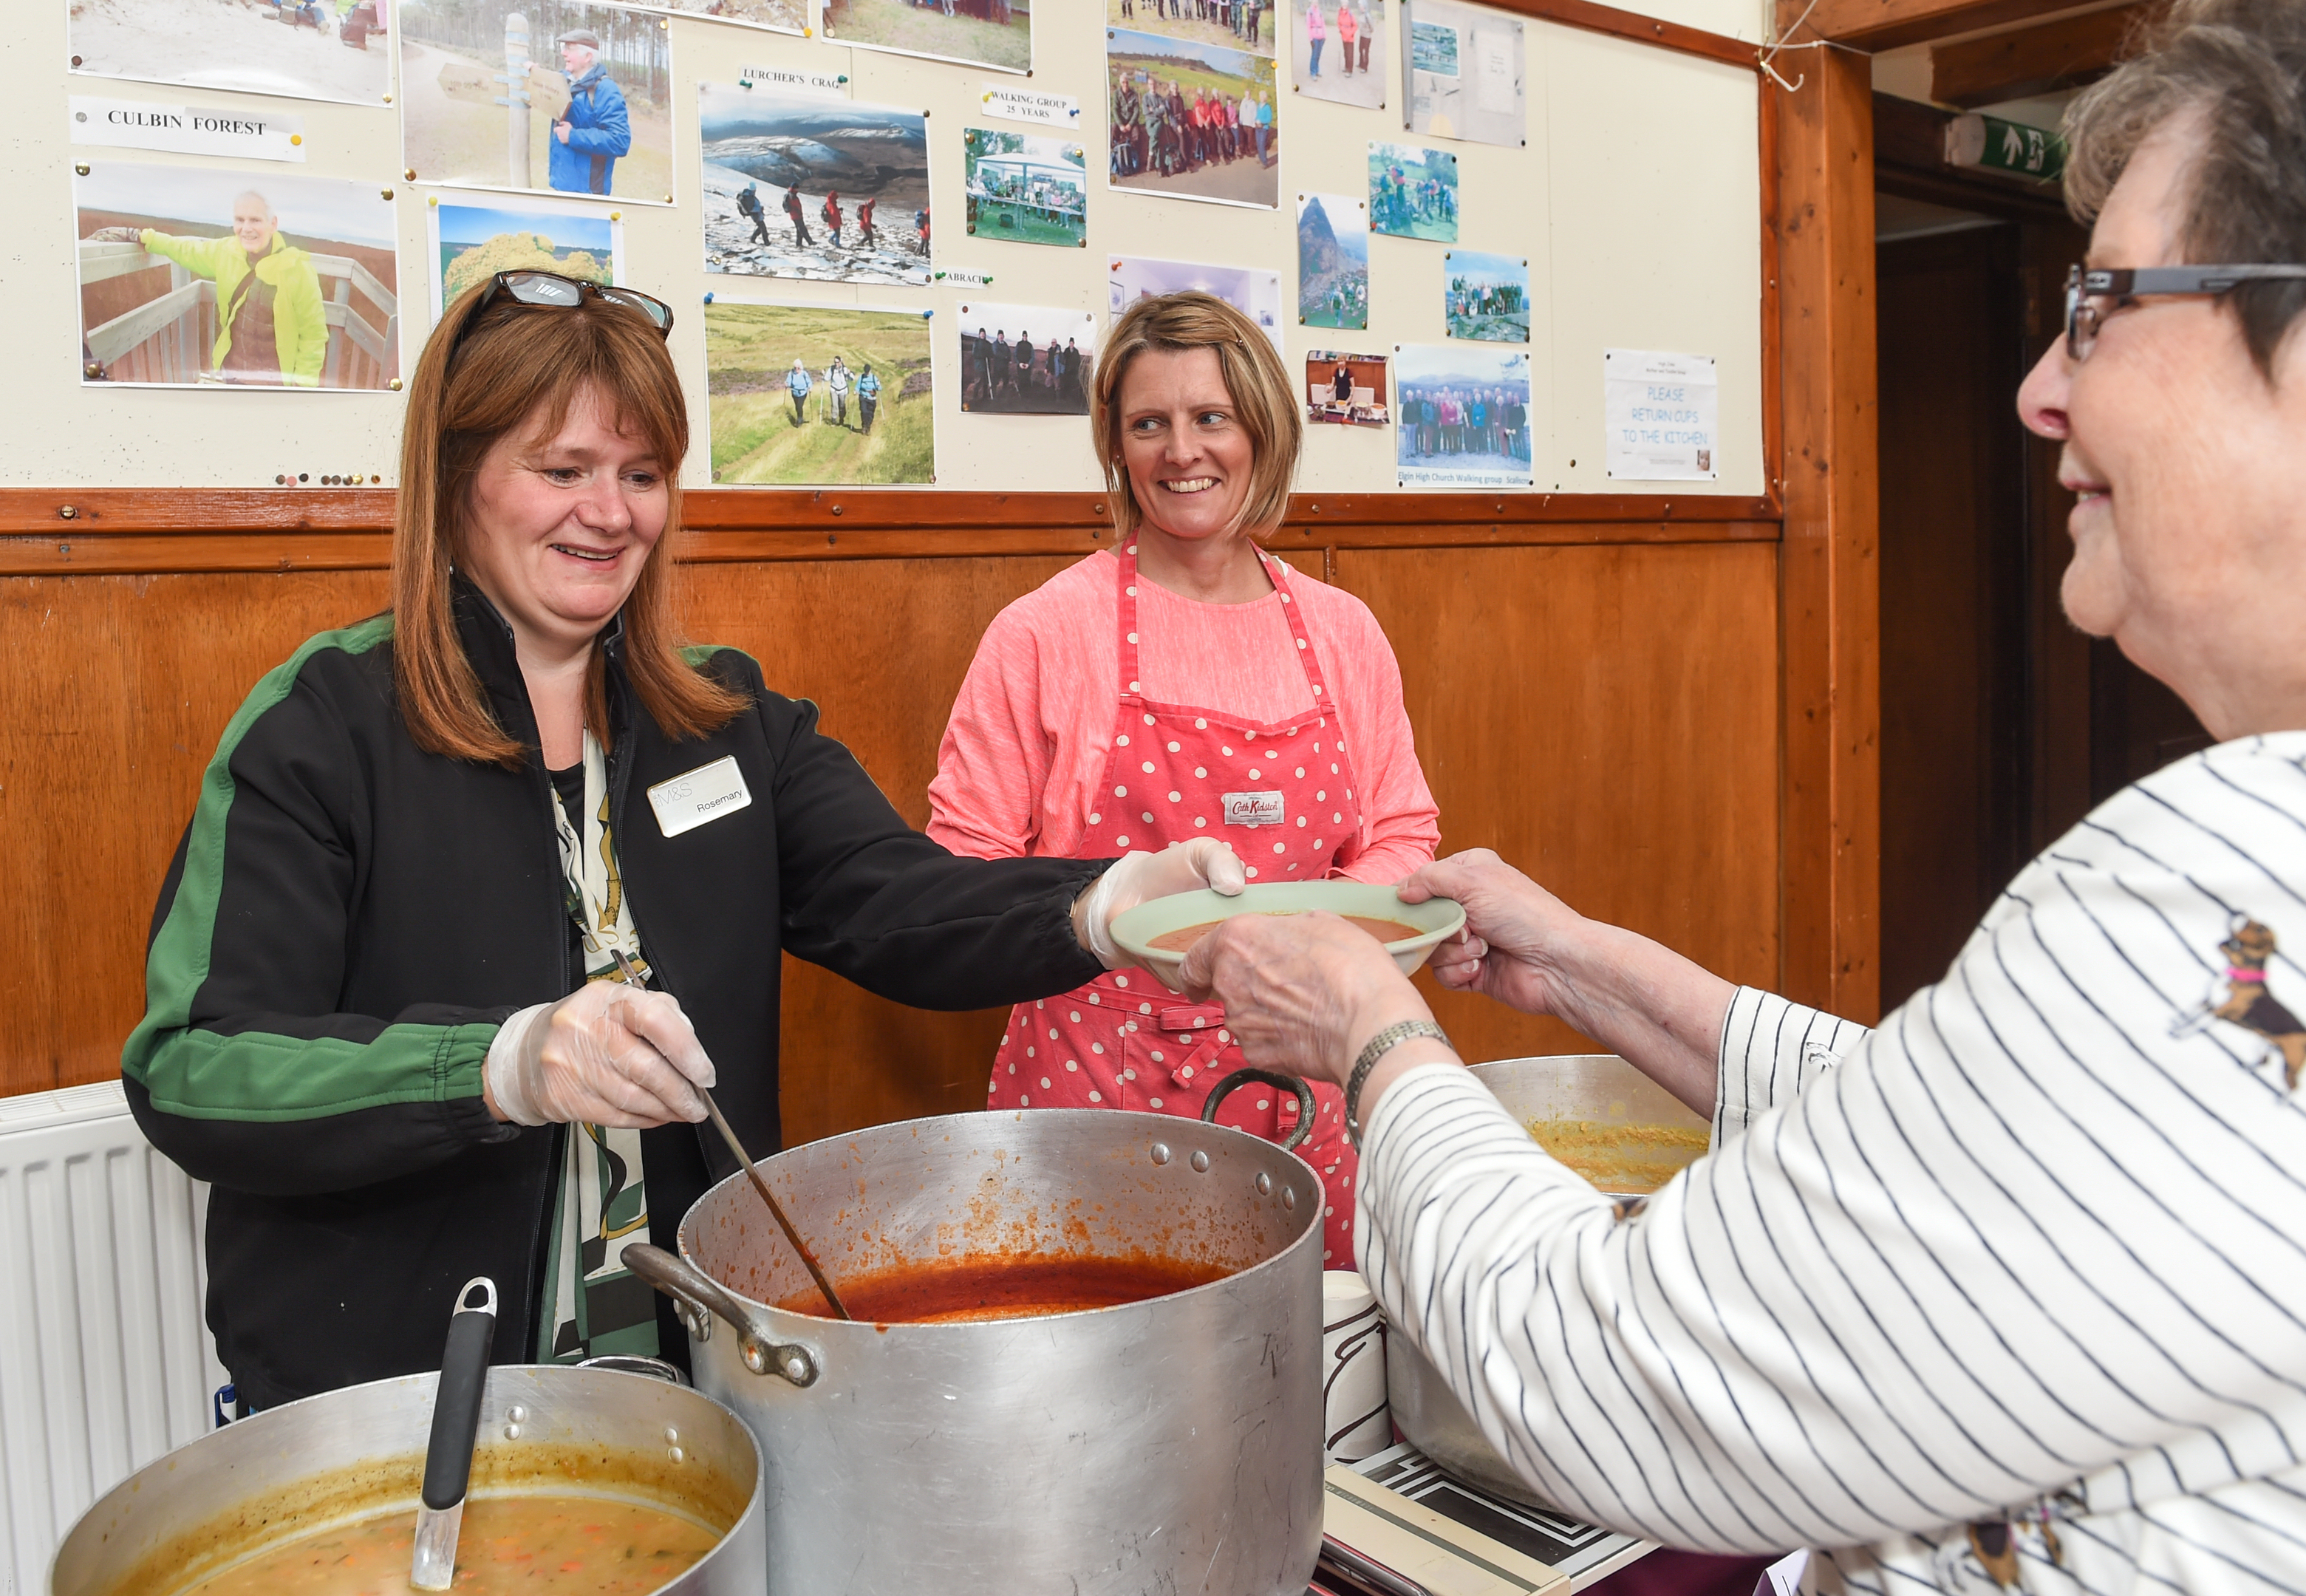 Moray food bank serves people in need all over the region